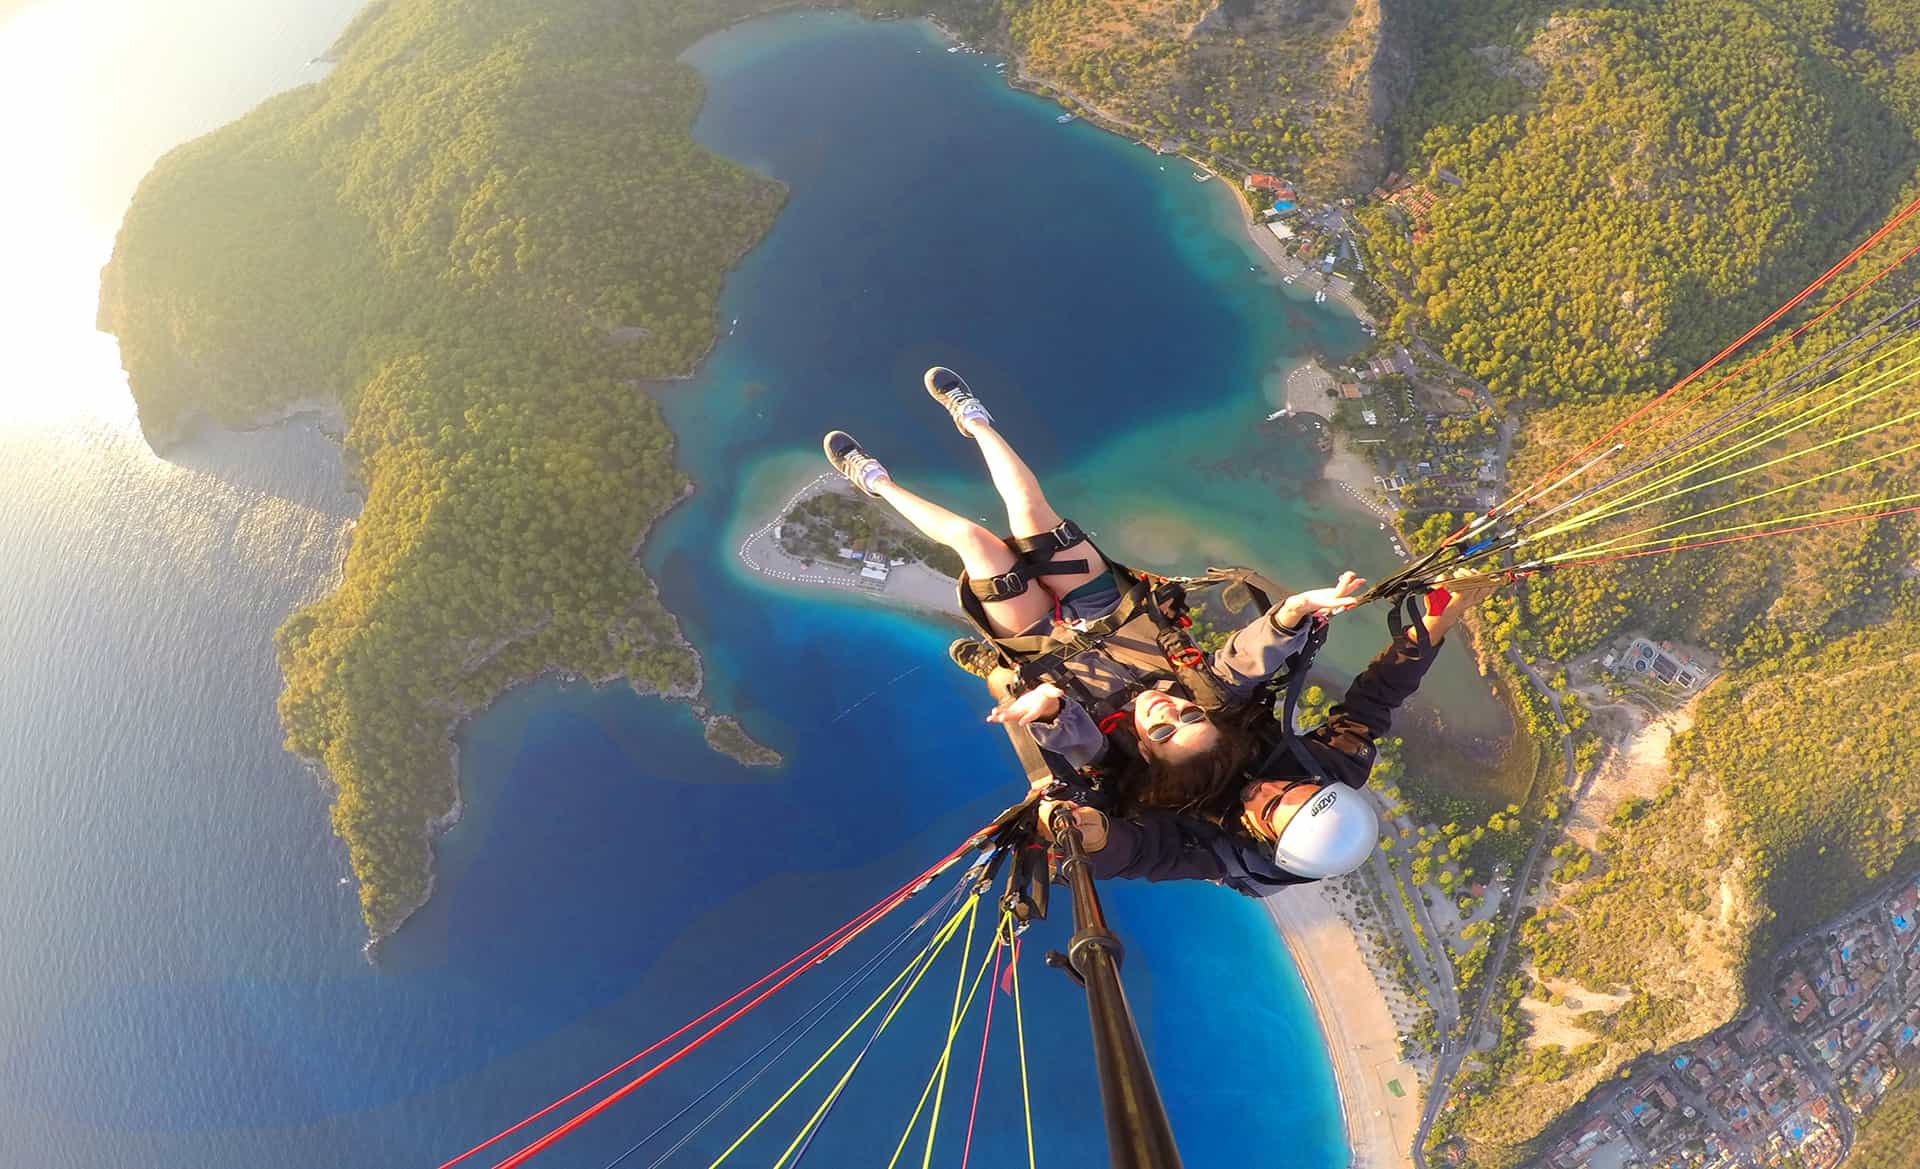 Olga Maria Dreams in Heels - Go Pro Shot - Paragliding in Turkey